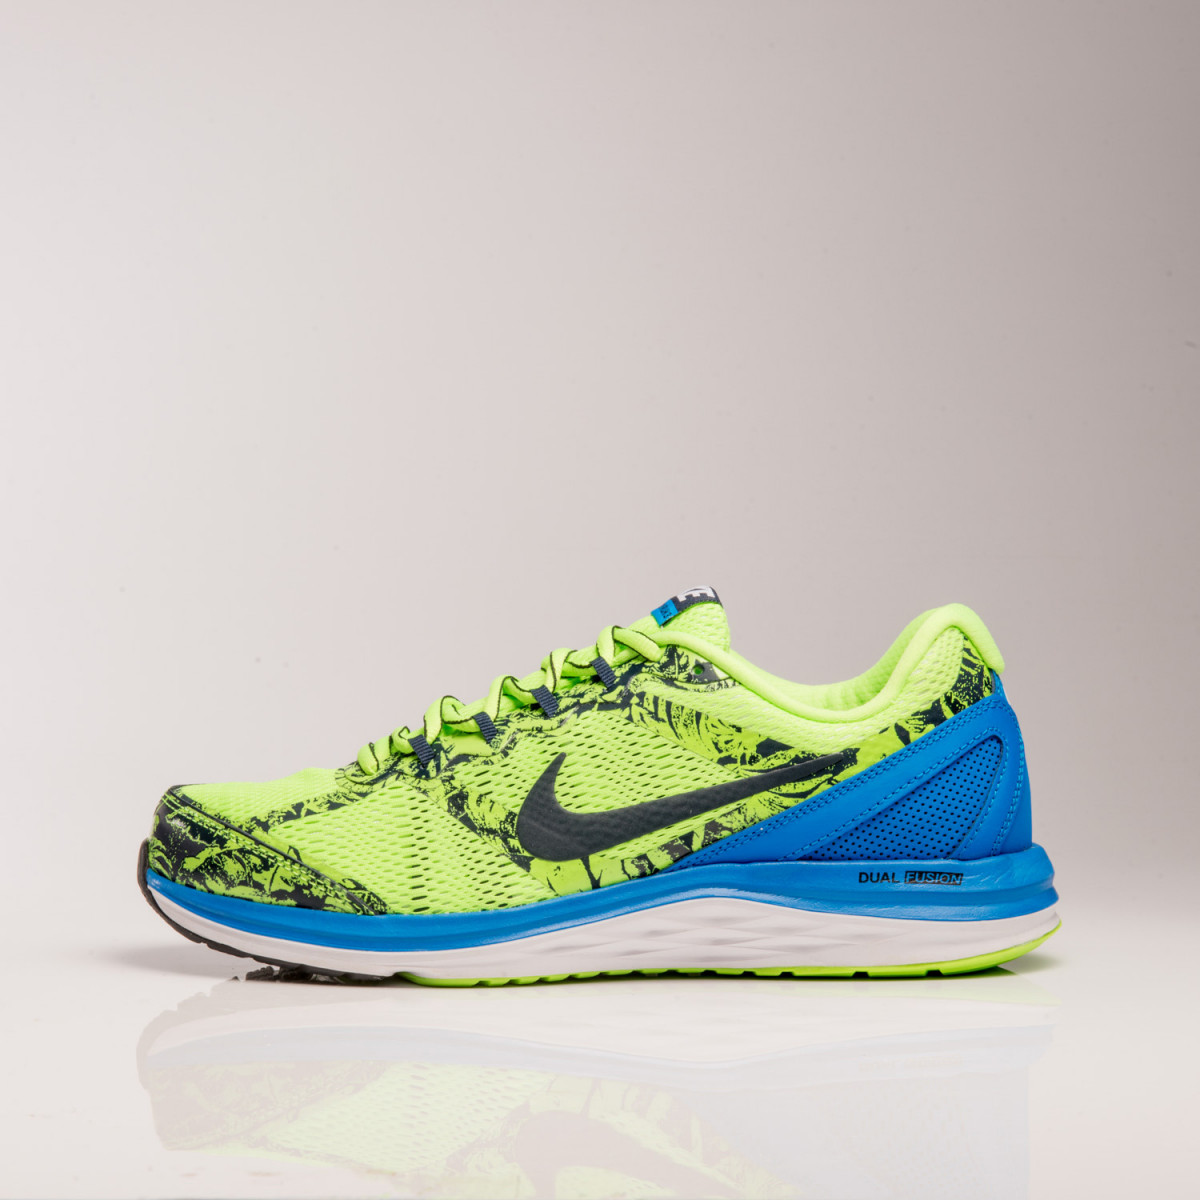 Zapatillas Nike Dual Fusion Run 3